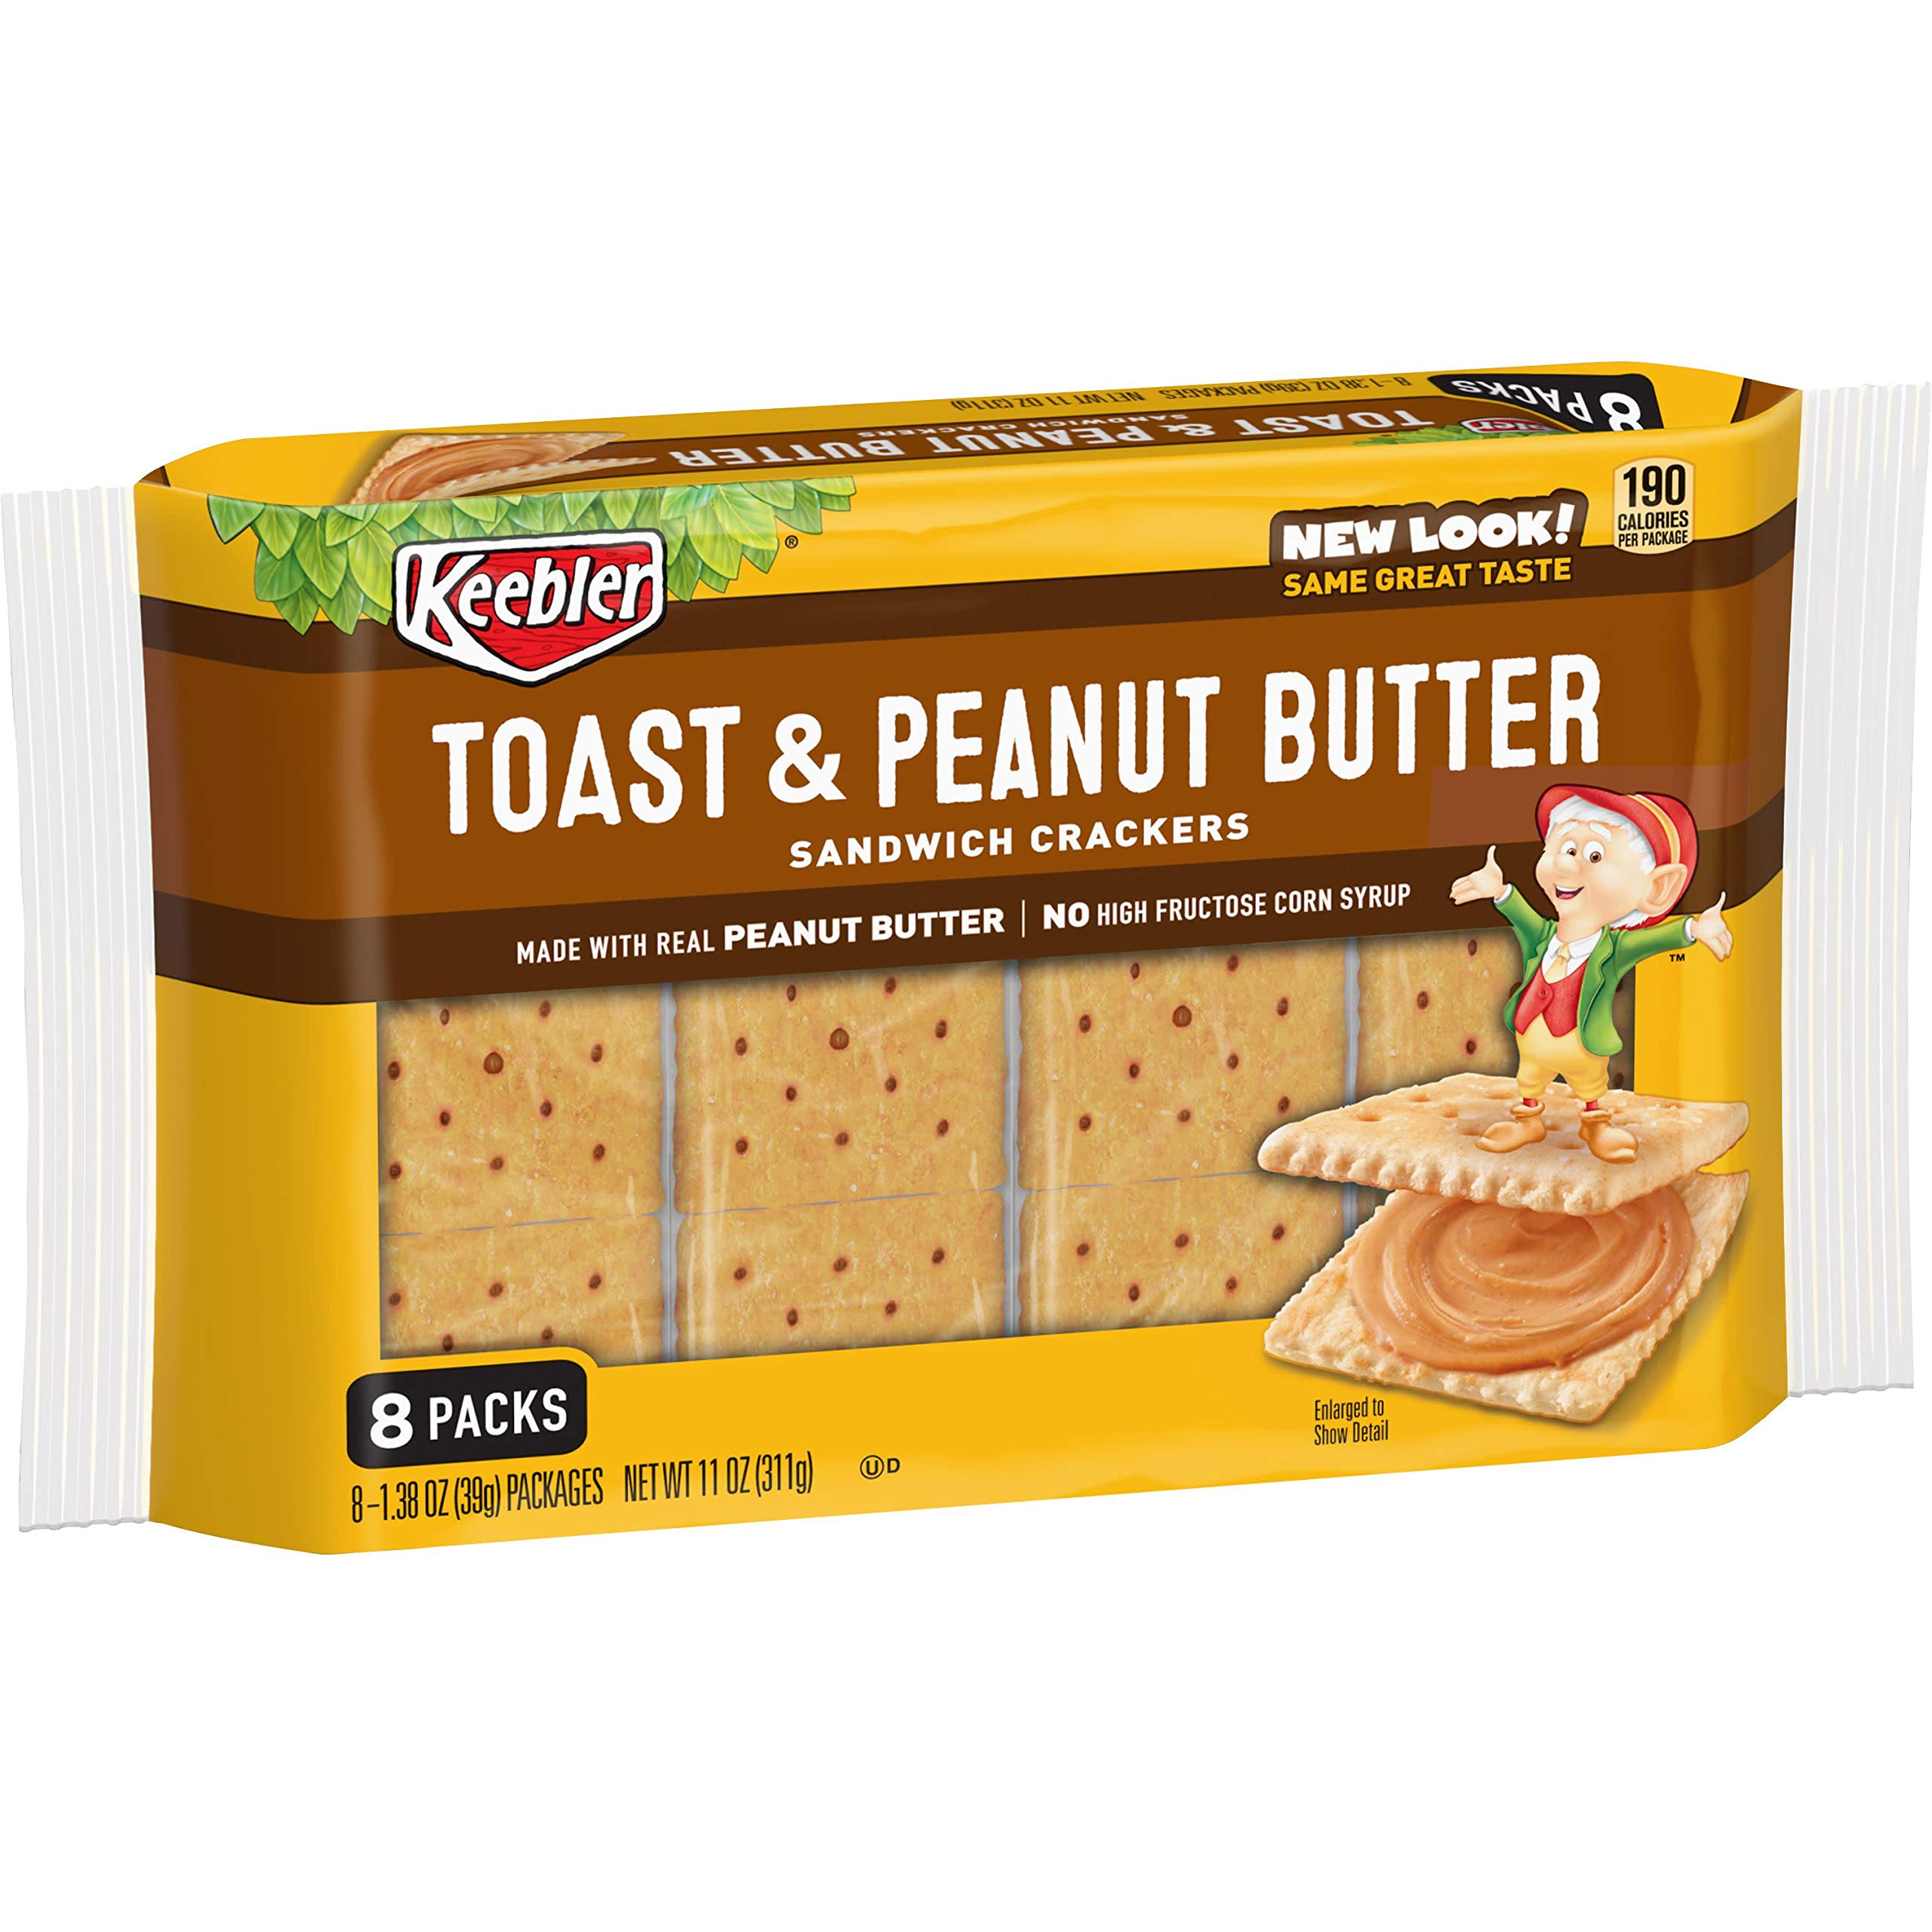 Keebler Toast and Peanut Butter Sandwich Crackers, Single Serve, 1.38 oz Packages (8 Count)(Pack of 12)